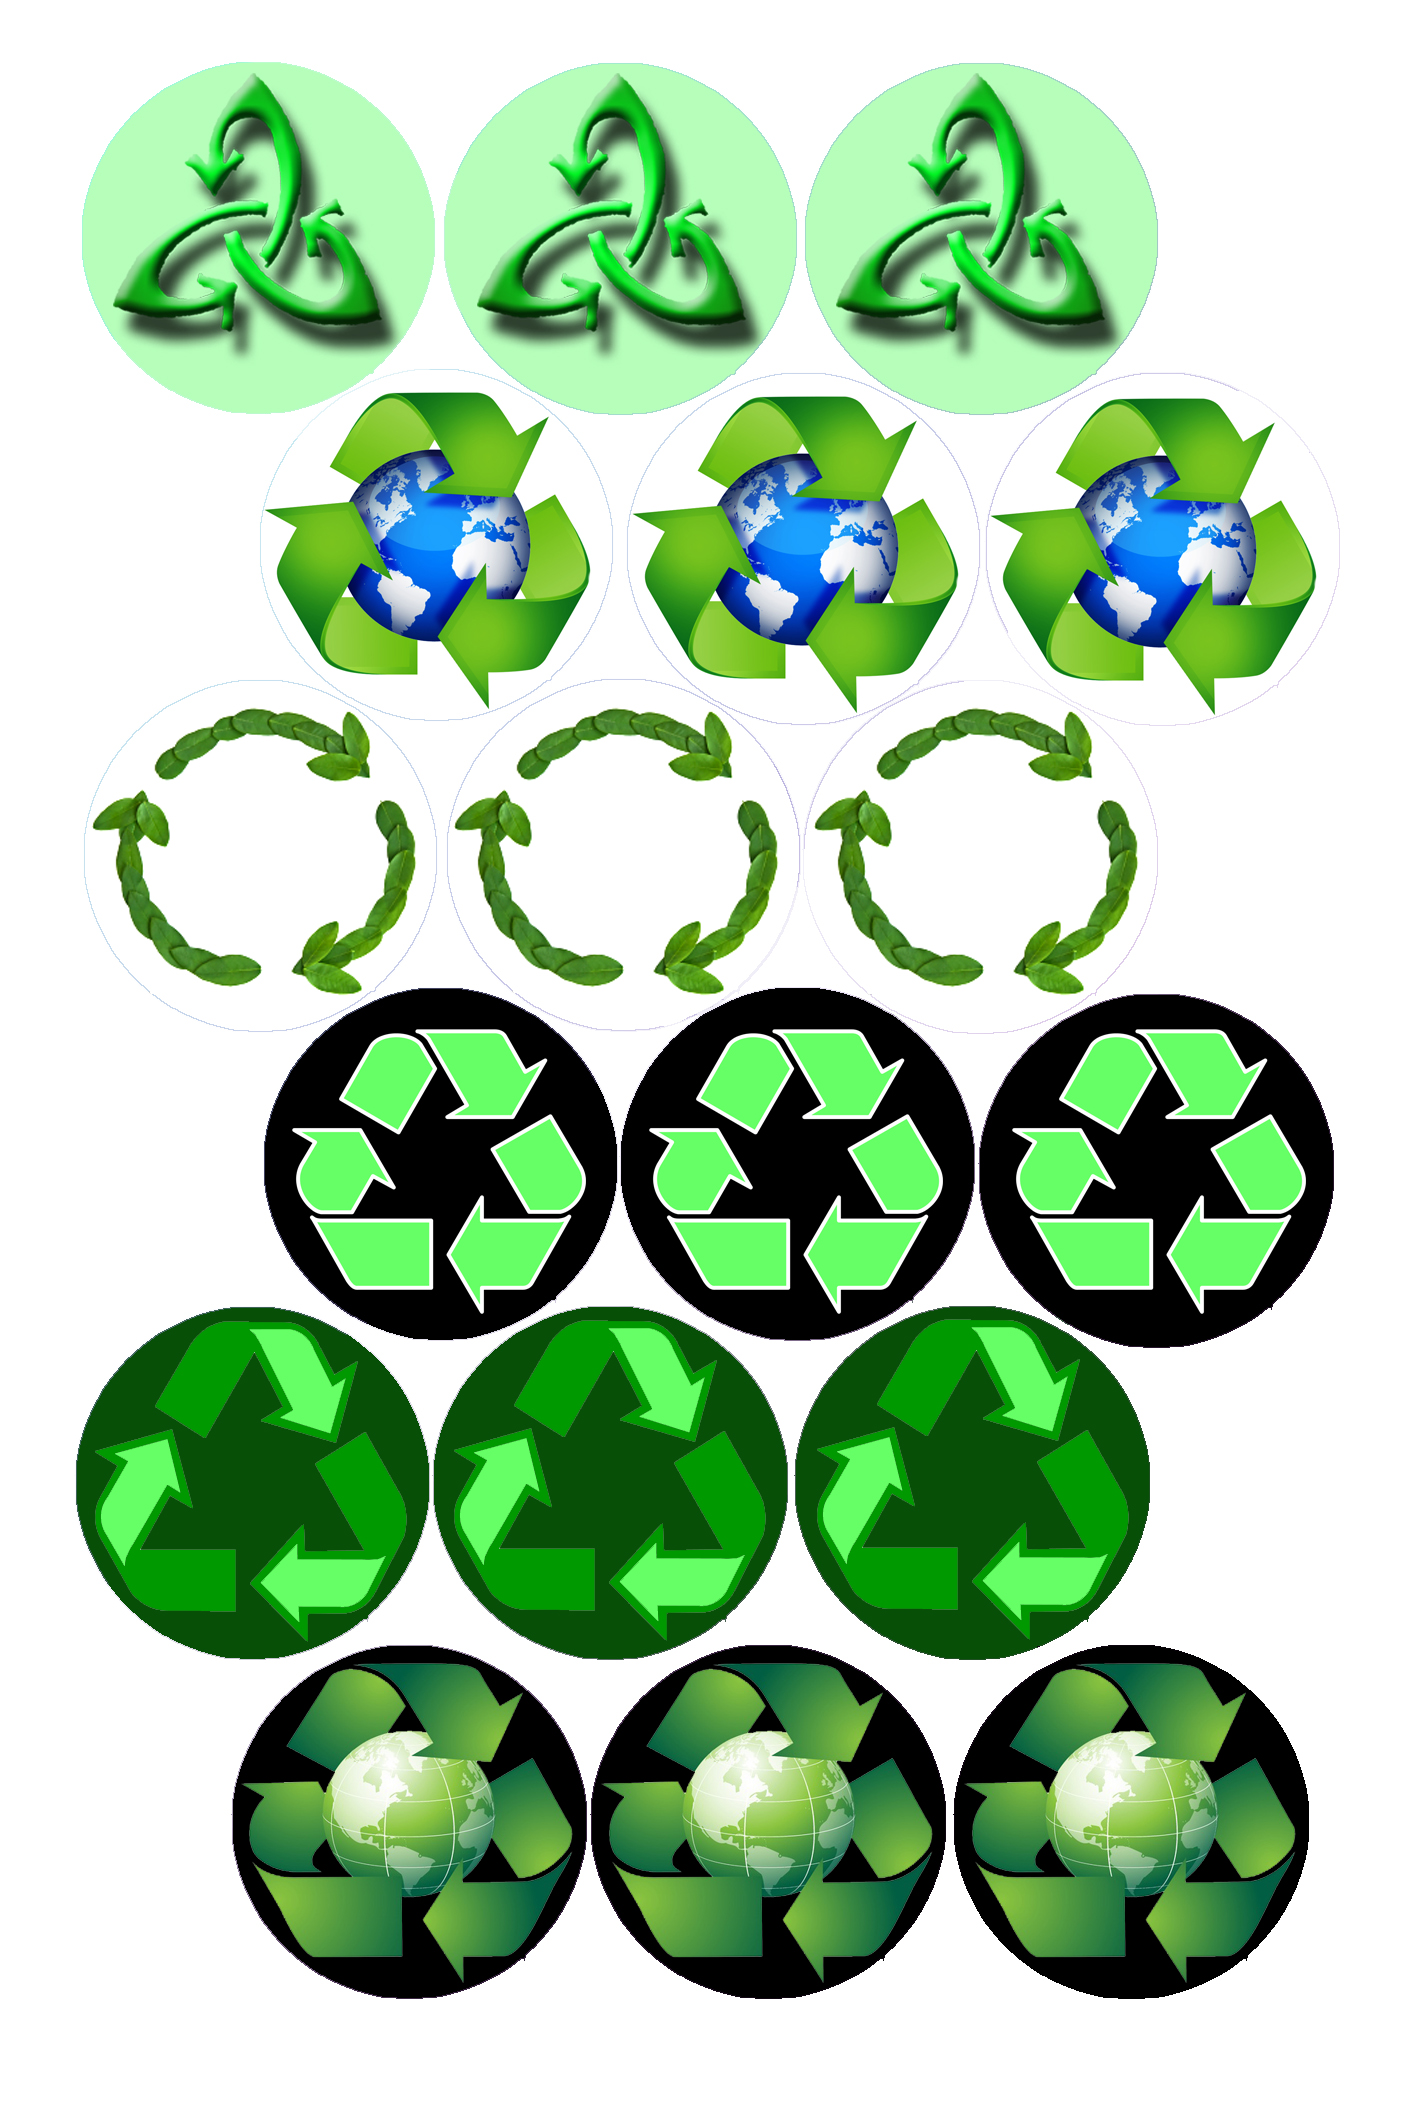 1404x2105 Recycle Symbols Bottle Cap Image Pack Formatted For Printing On 4